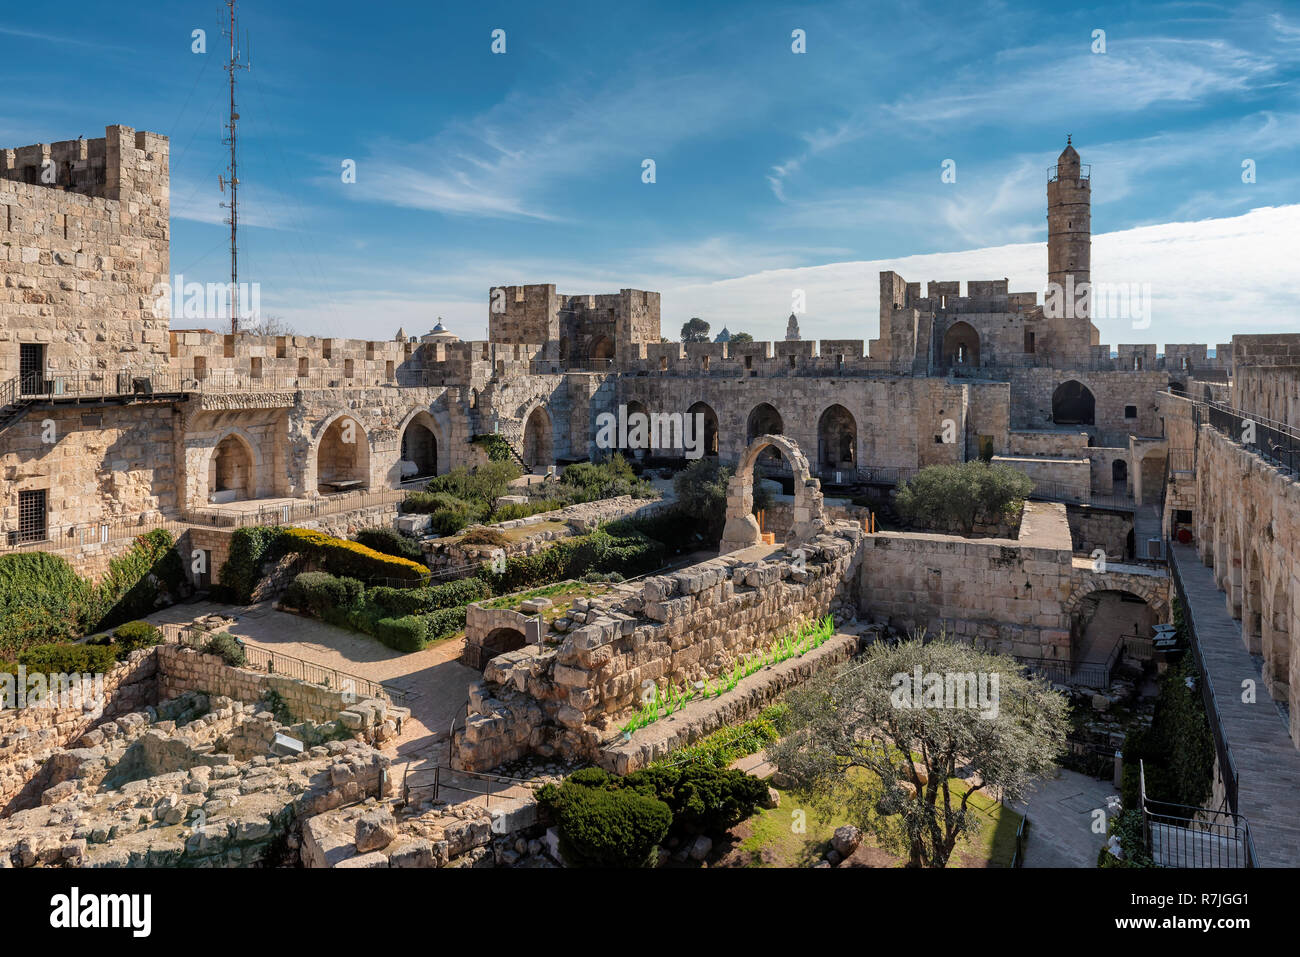 David's tower in old city of Jerusalem, Israel. Stock Photo